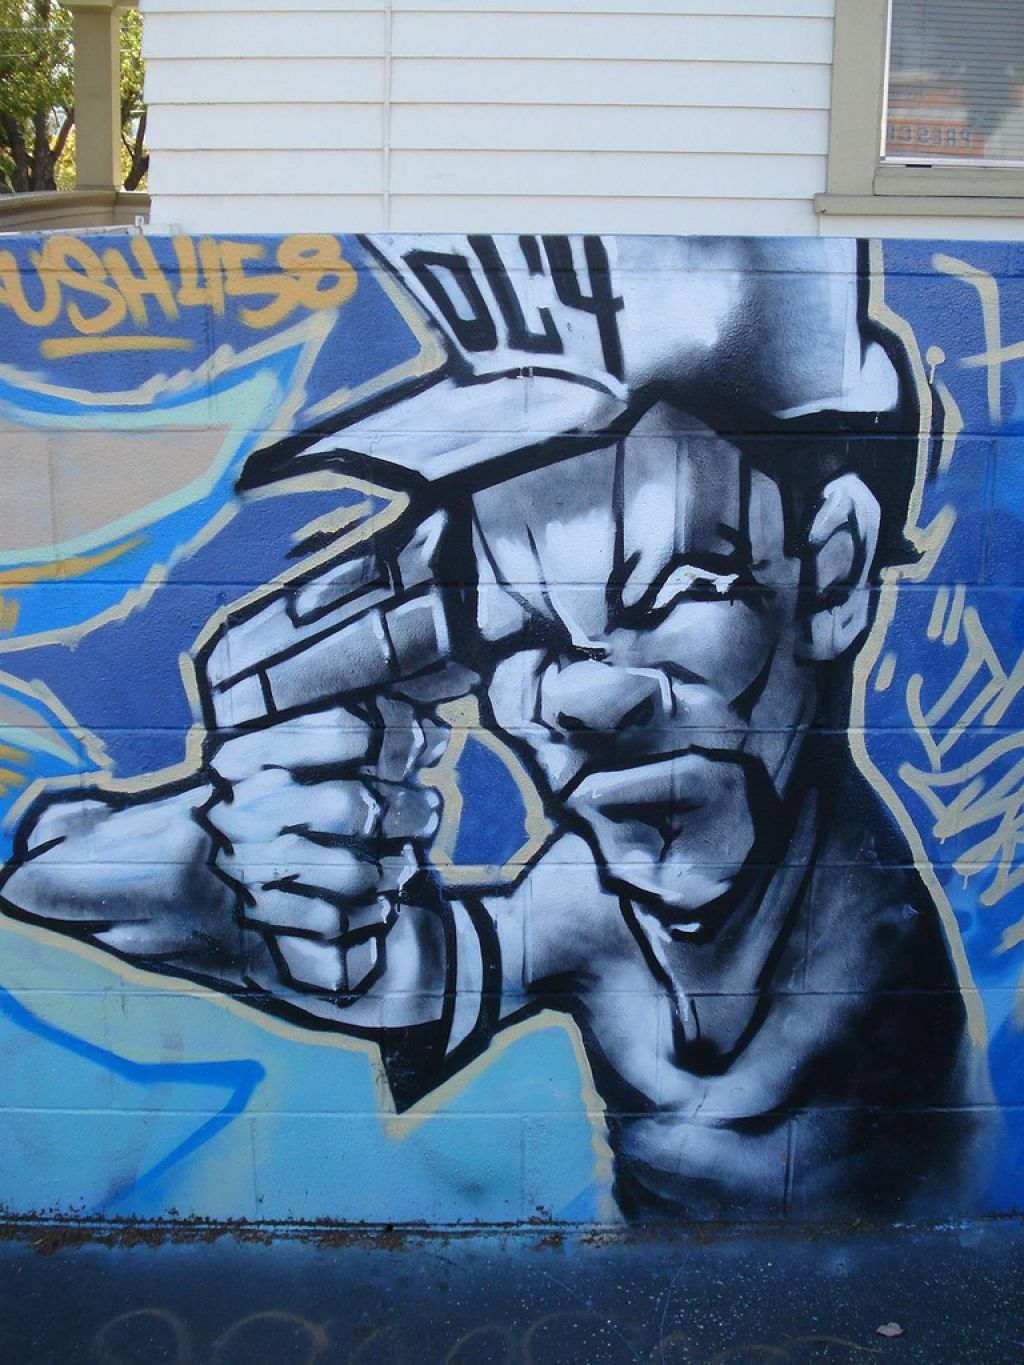 graffiti art1 Street Art and Graffiti in Los Angeles